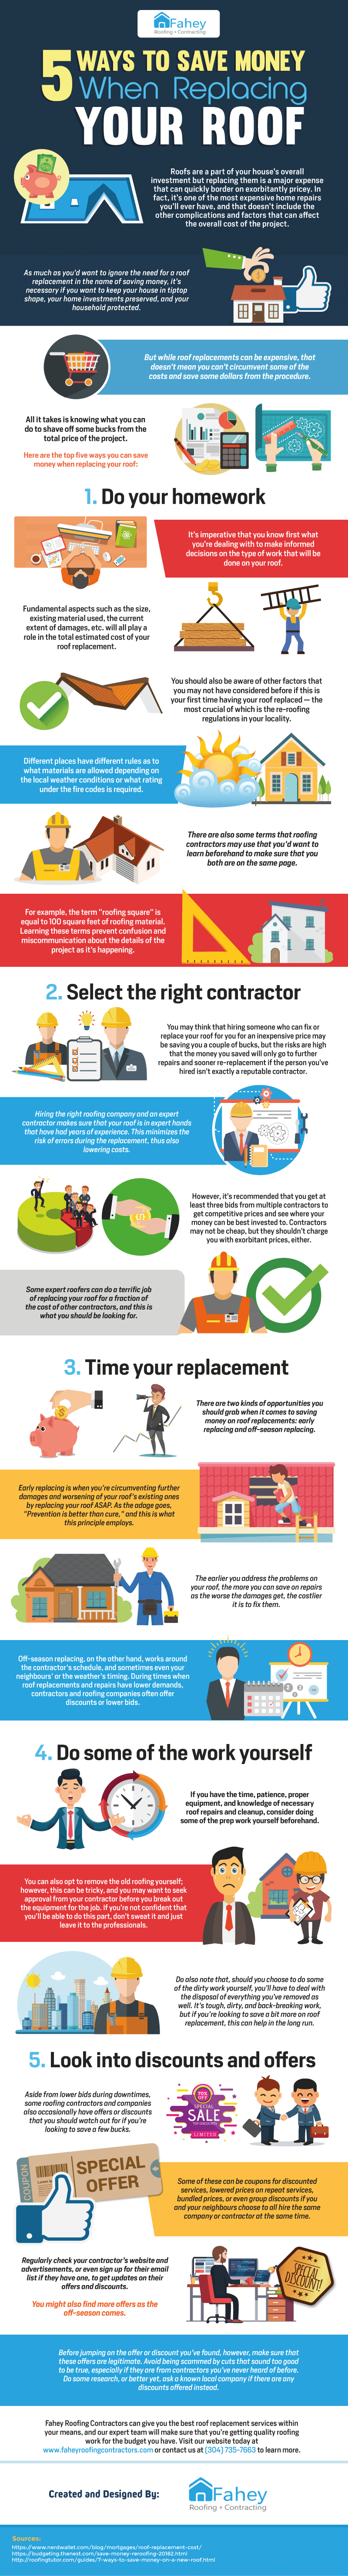 5-Ways-to-Save-Money-When-Replacing-Your-Roof